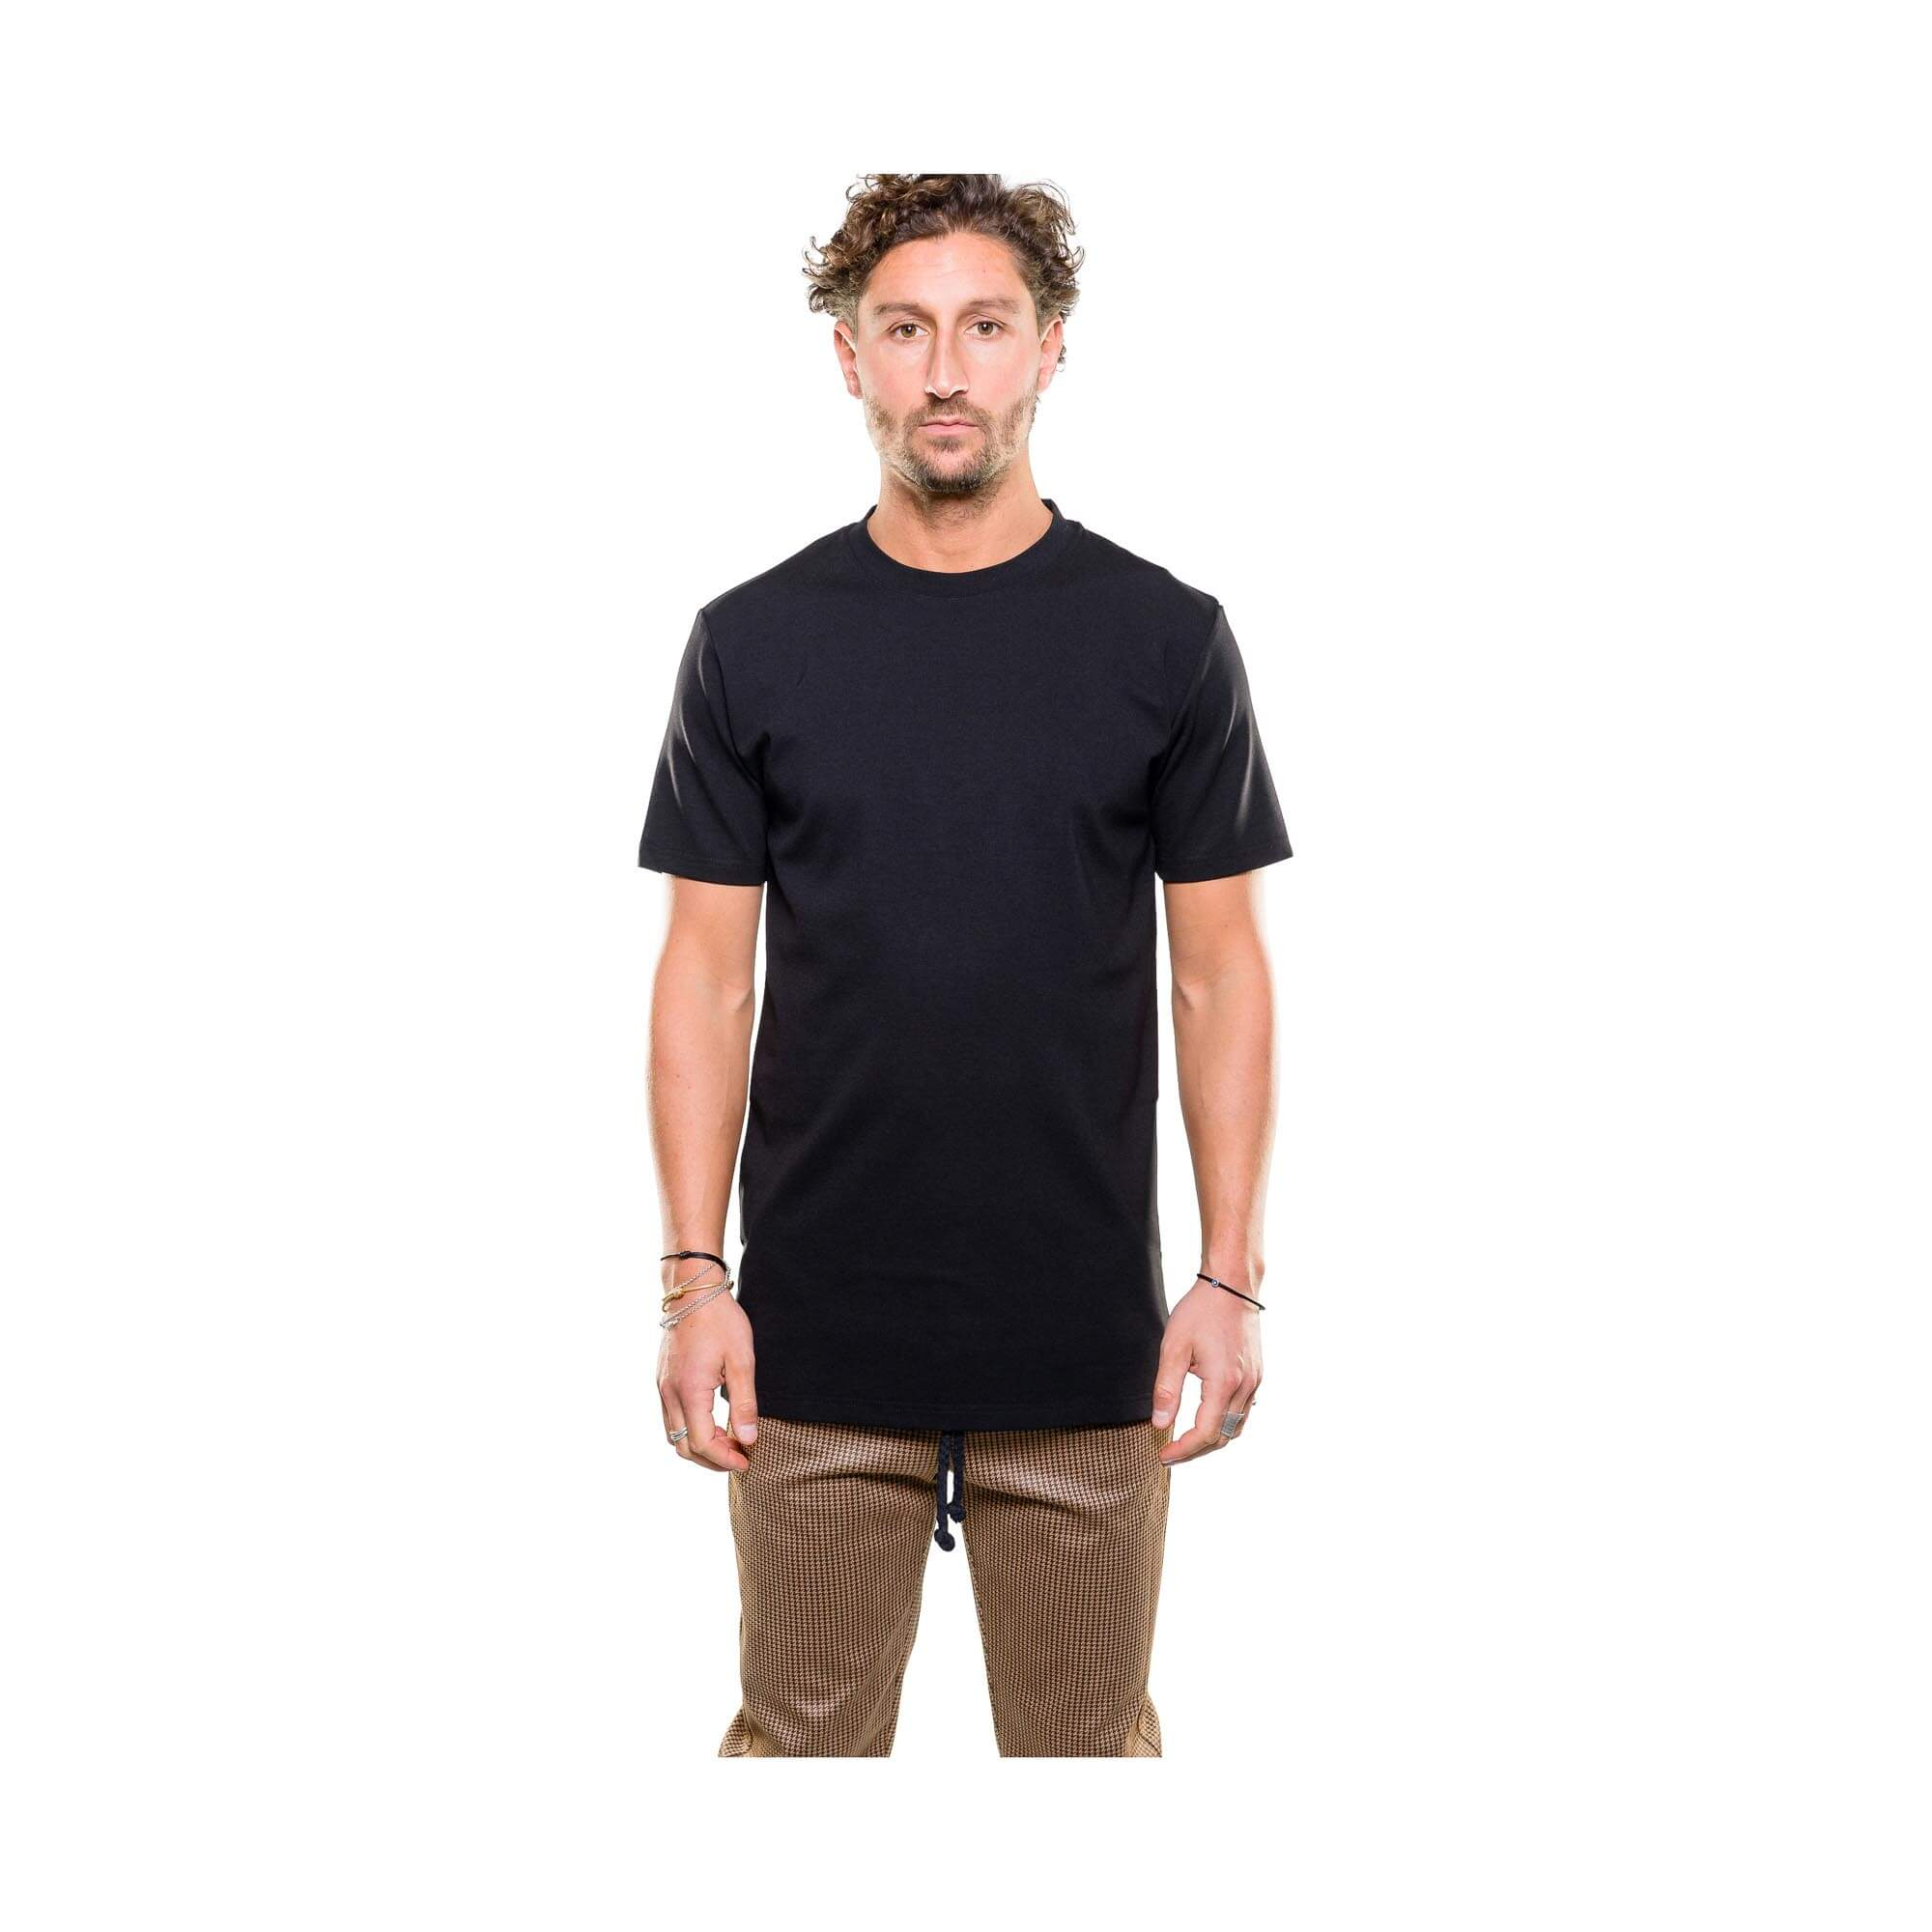 Punto tee black outfit